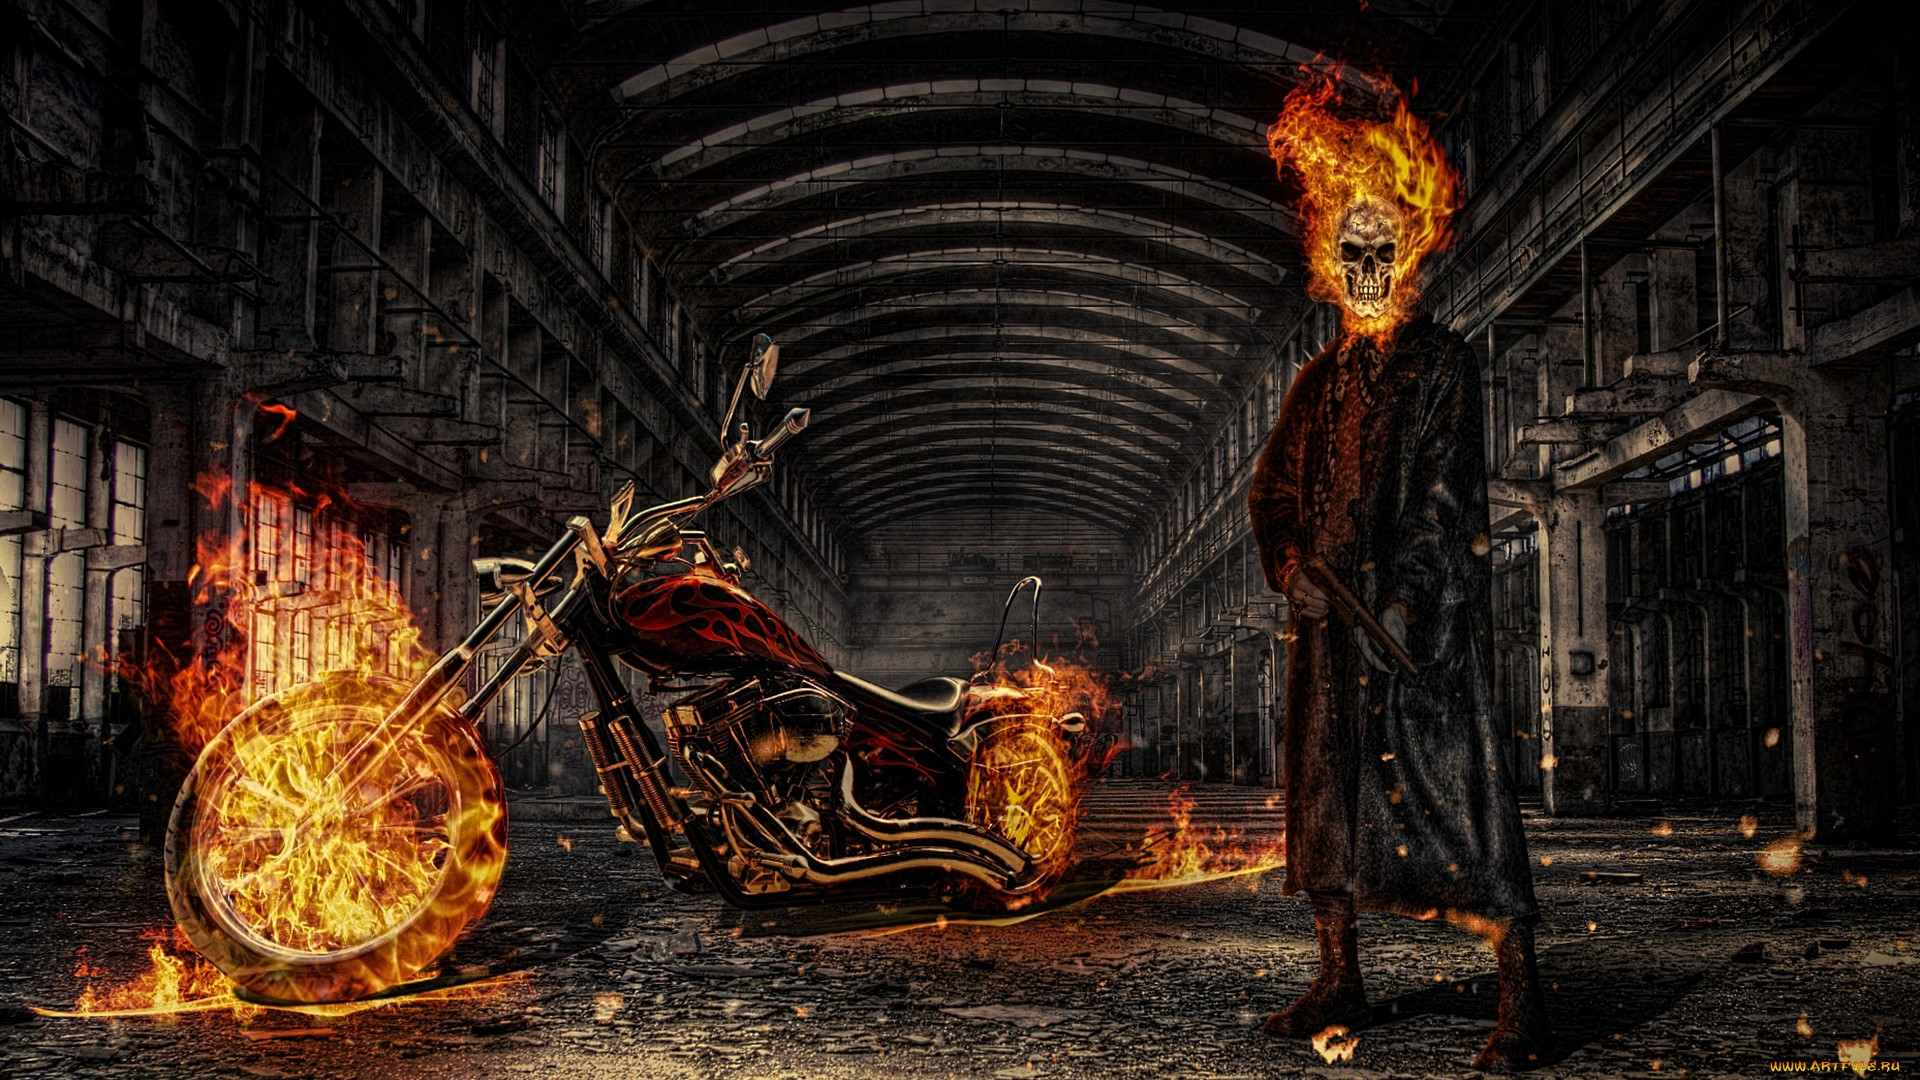 Iphone X Full Wallpaper Size Hd Ghost Rider Wallpaper Full Hd Pictures